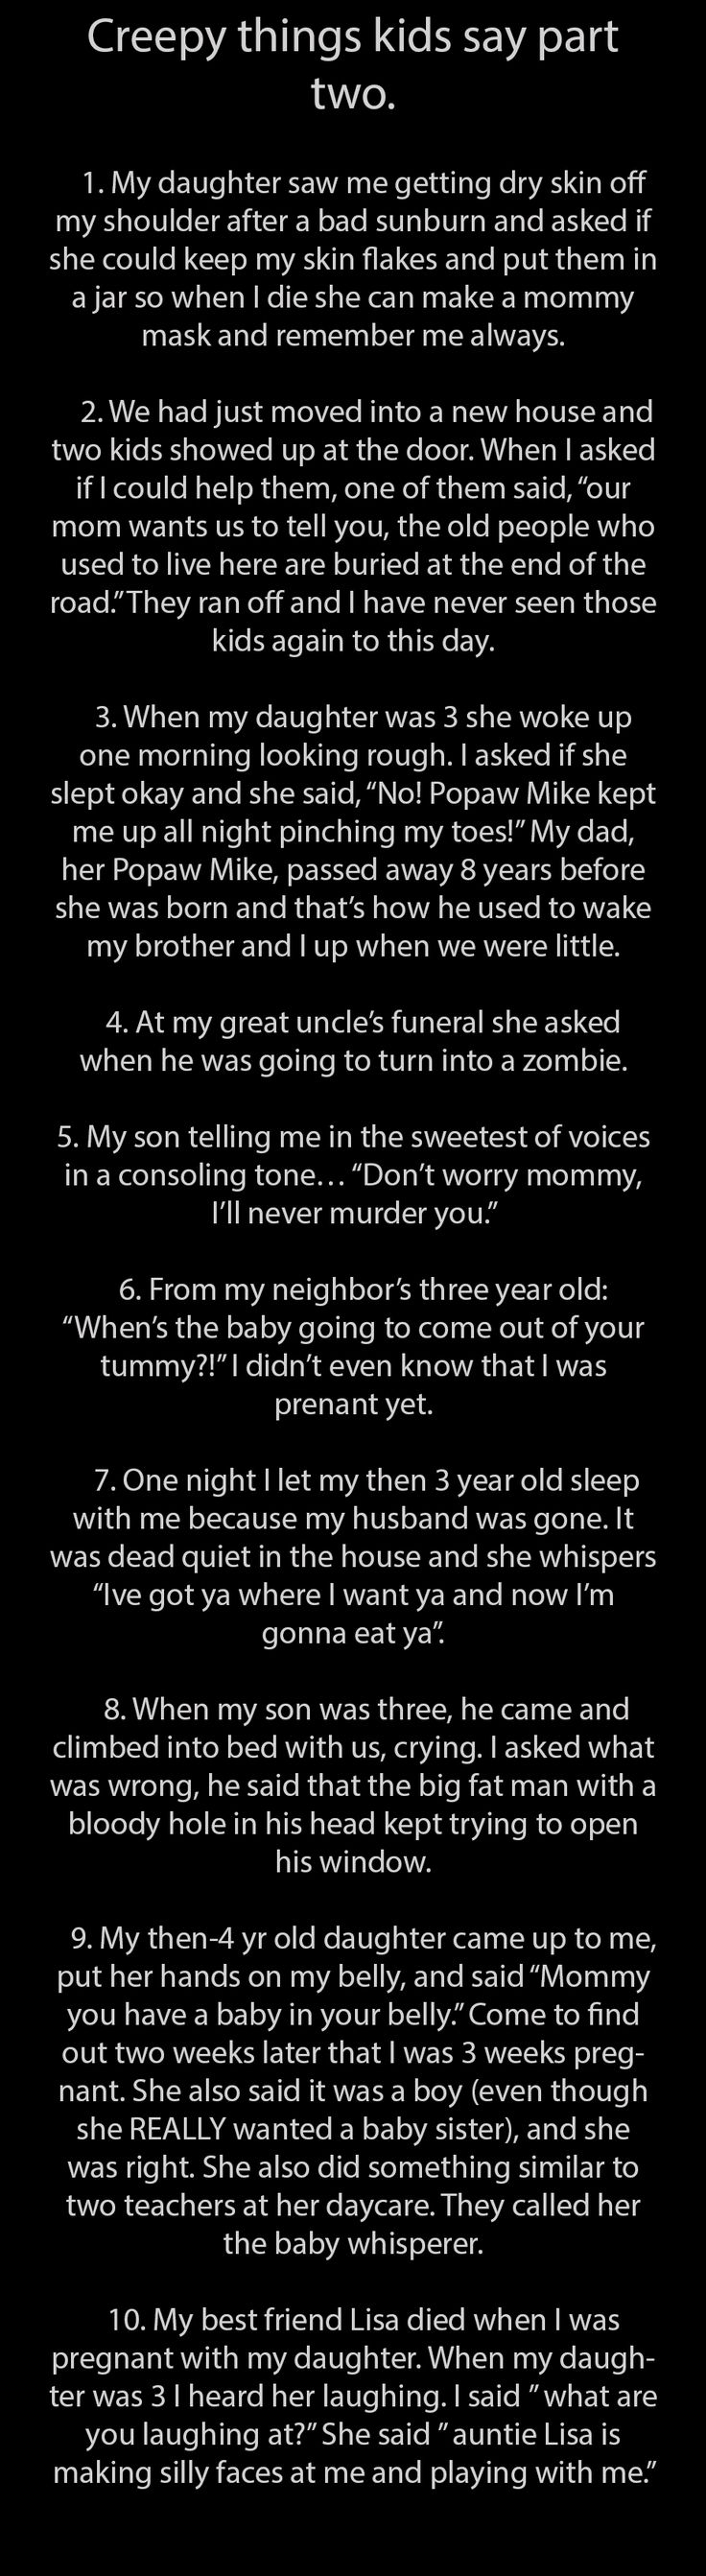 Creepy things kids say 2